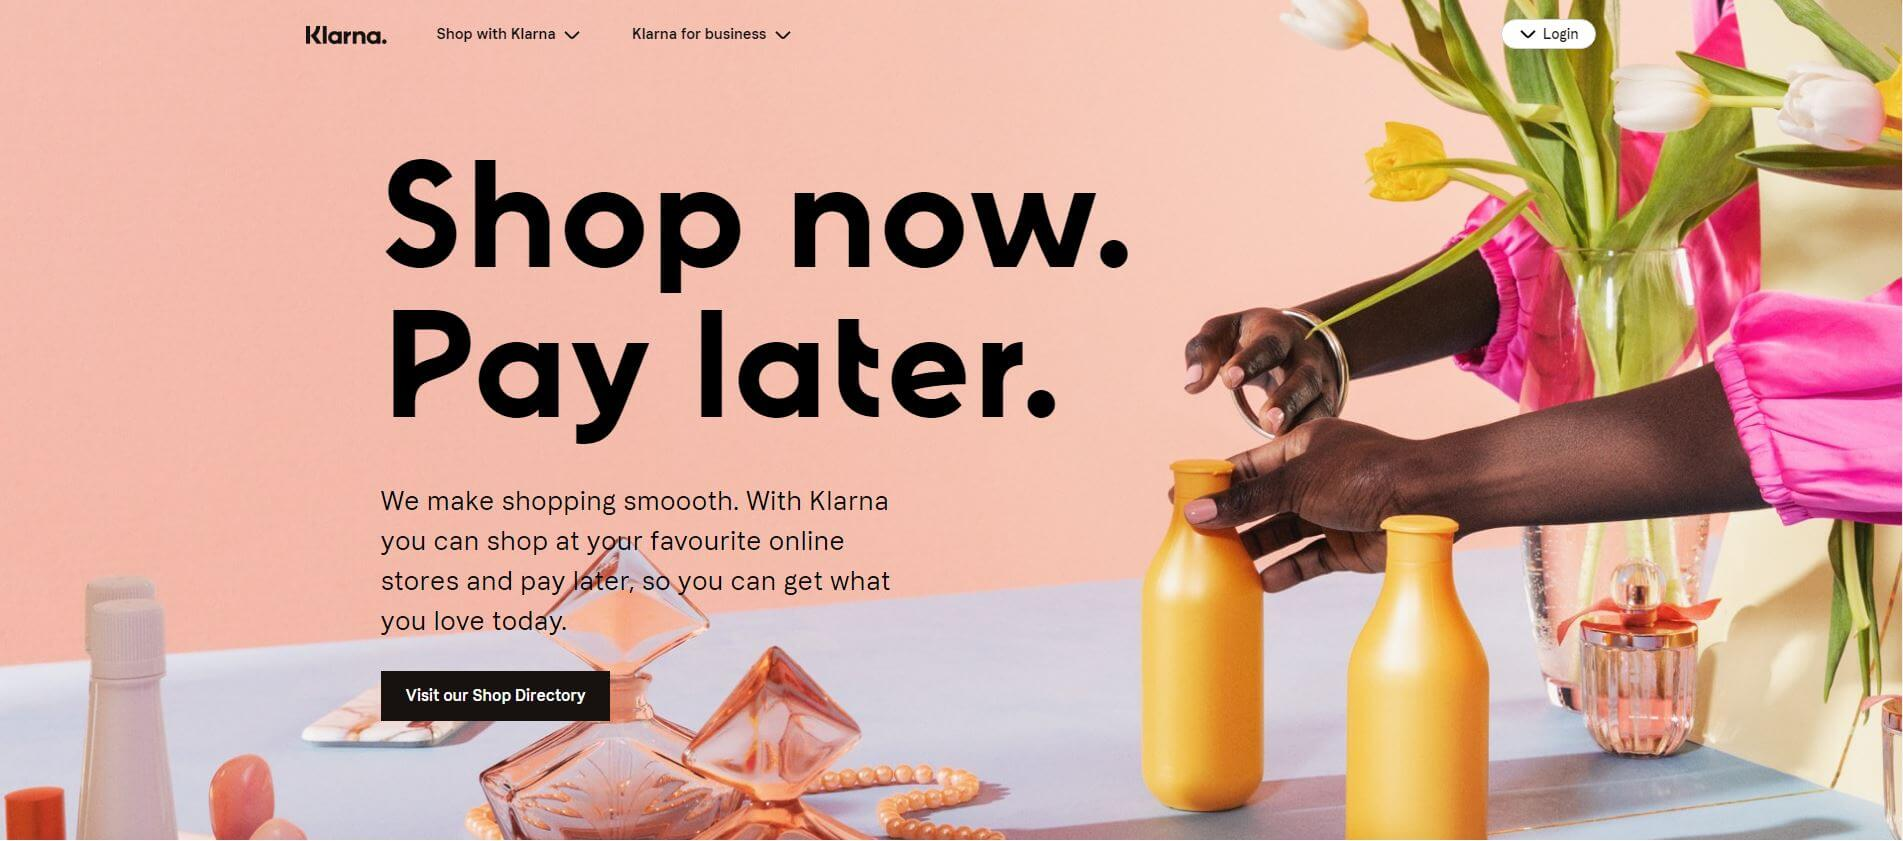 Klarna's website homepage